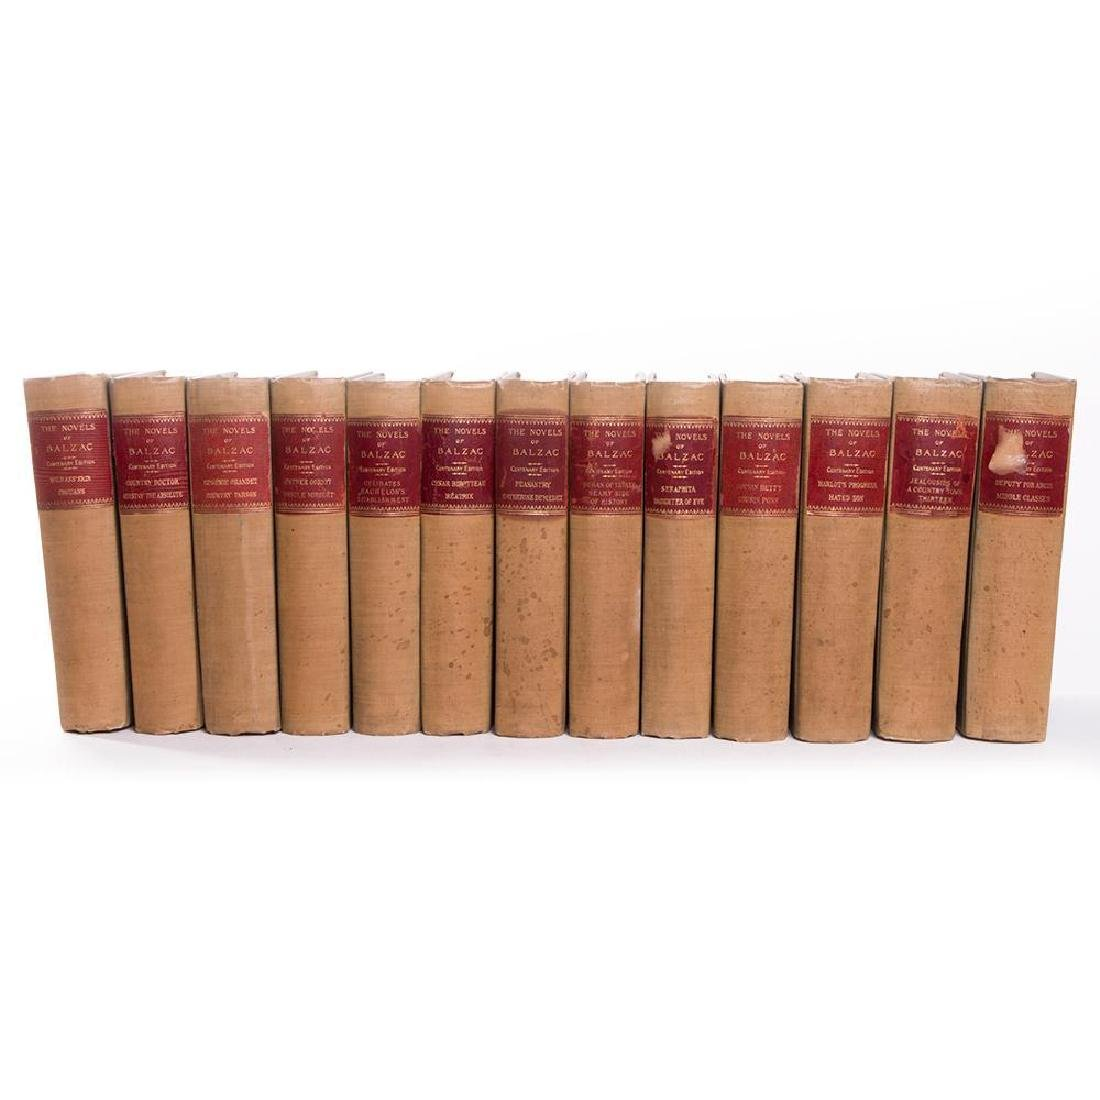 Thirteen volumes by Honore de Balzac